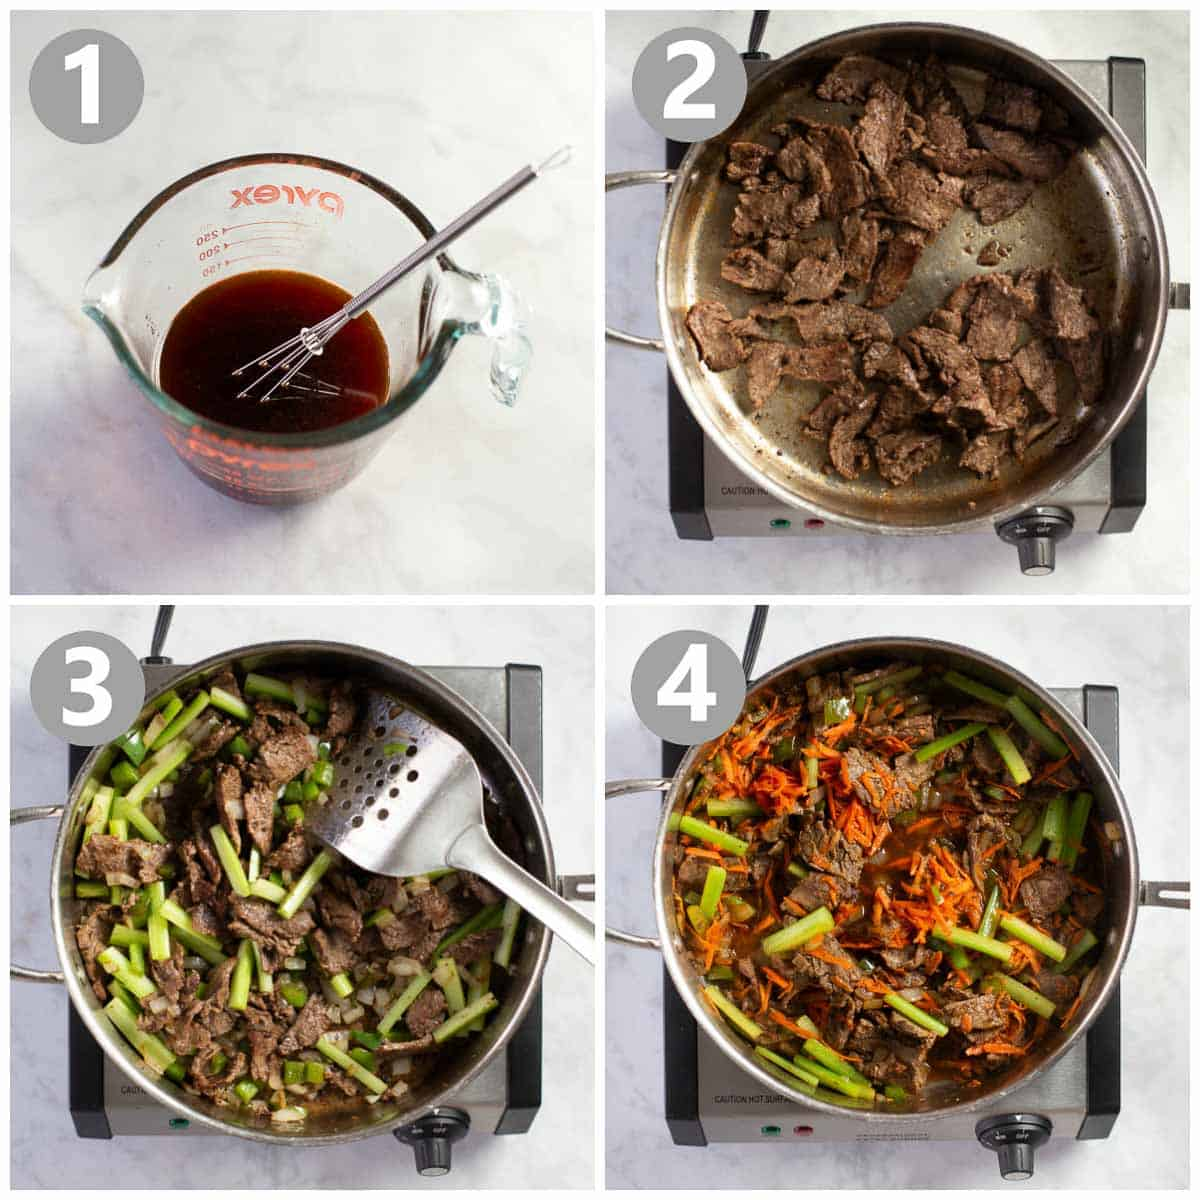 steps for making this recipe for stir fry beef